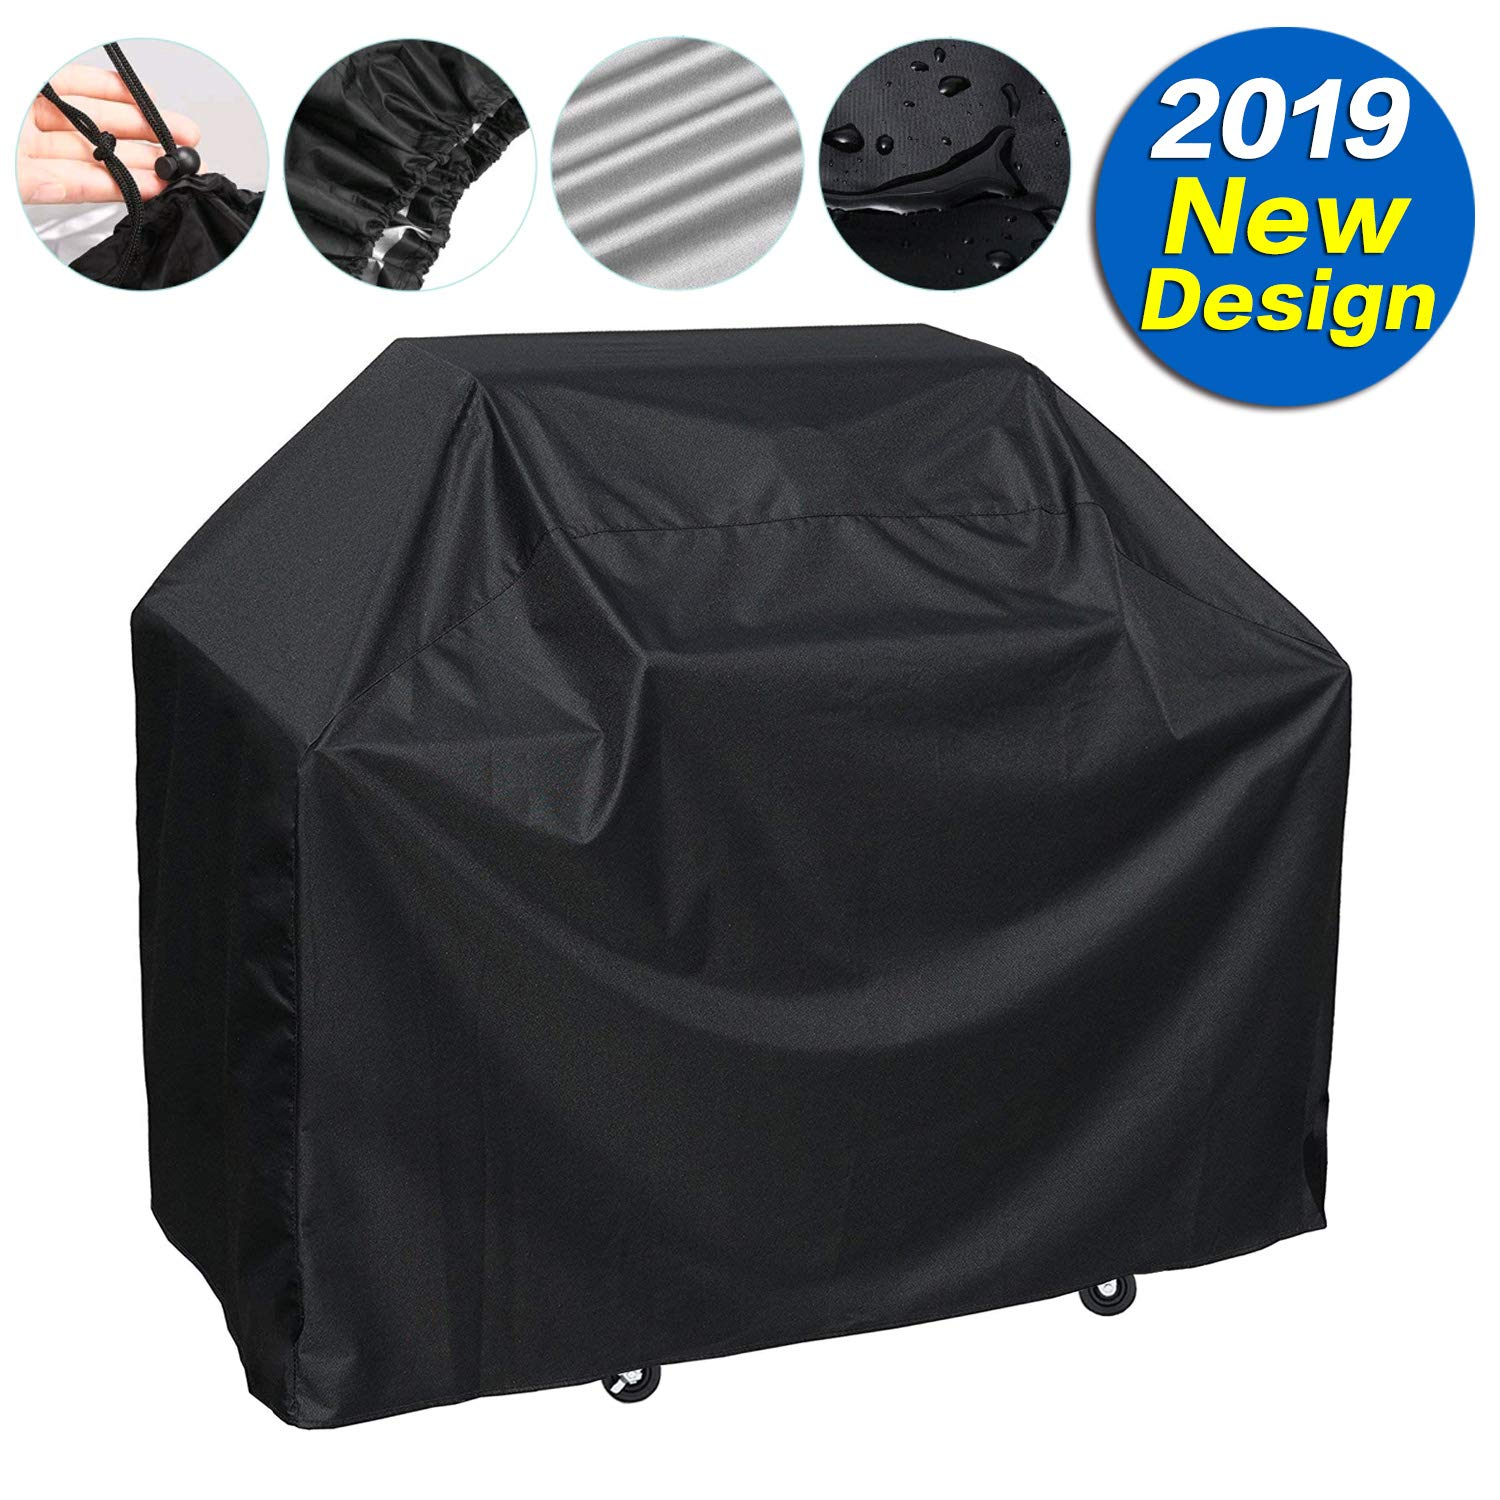 SARCCH Grill Cover,(58'' Black) BBQ Special Grill Cover,Waterproof and  UV Resistant Material, Durable and Convenient,Fits Grills of Weber Char-Broil Nexgrill Brinkmann and More by SARCCH